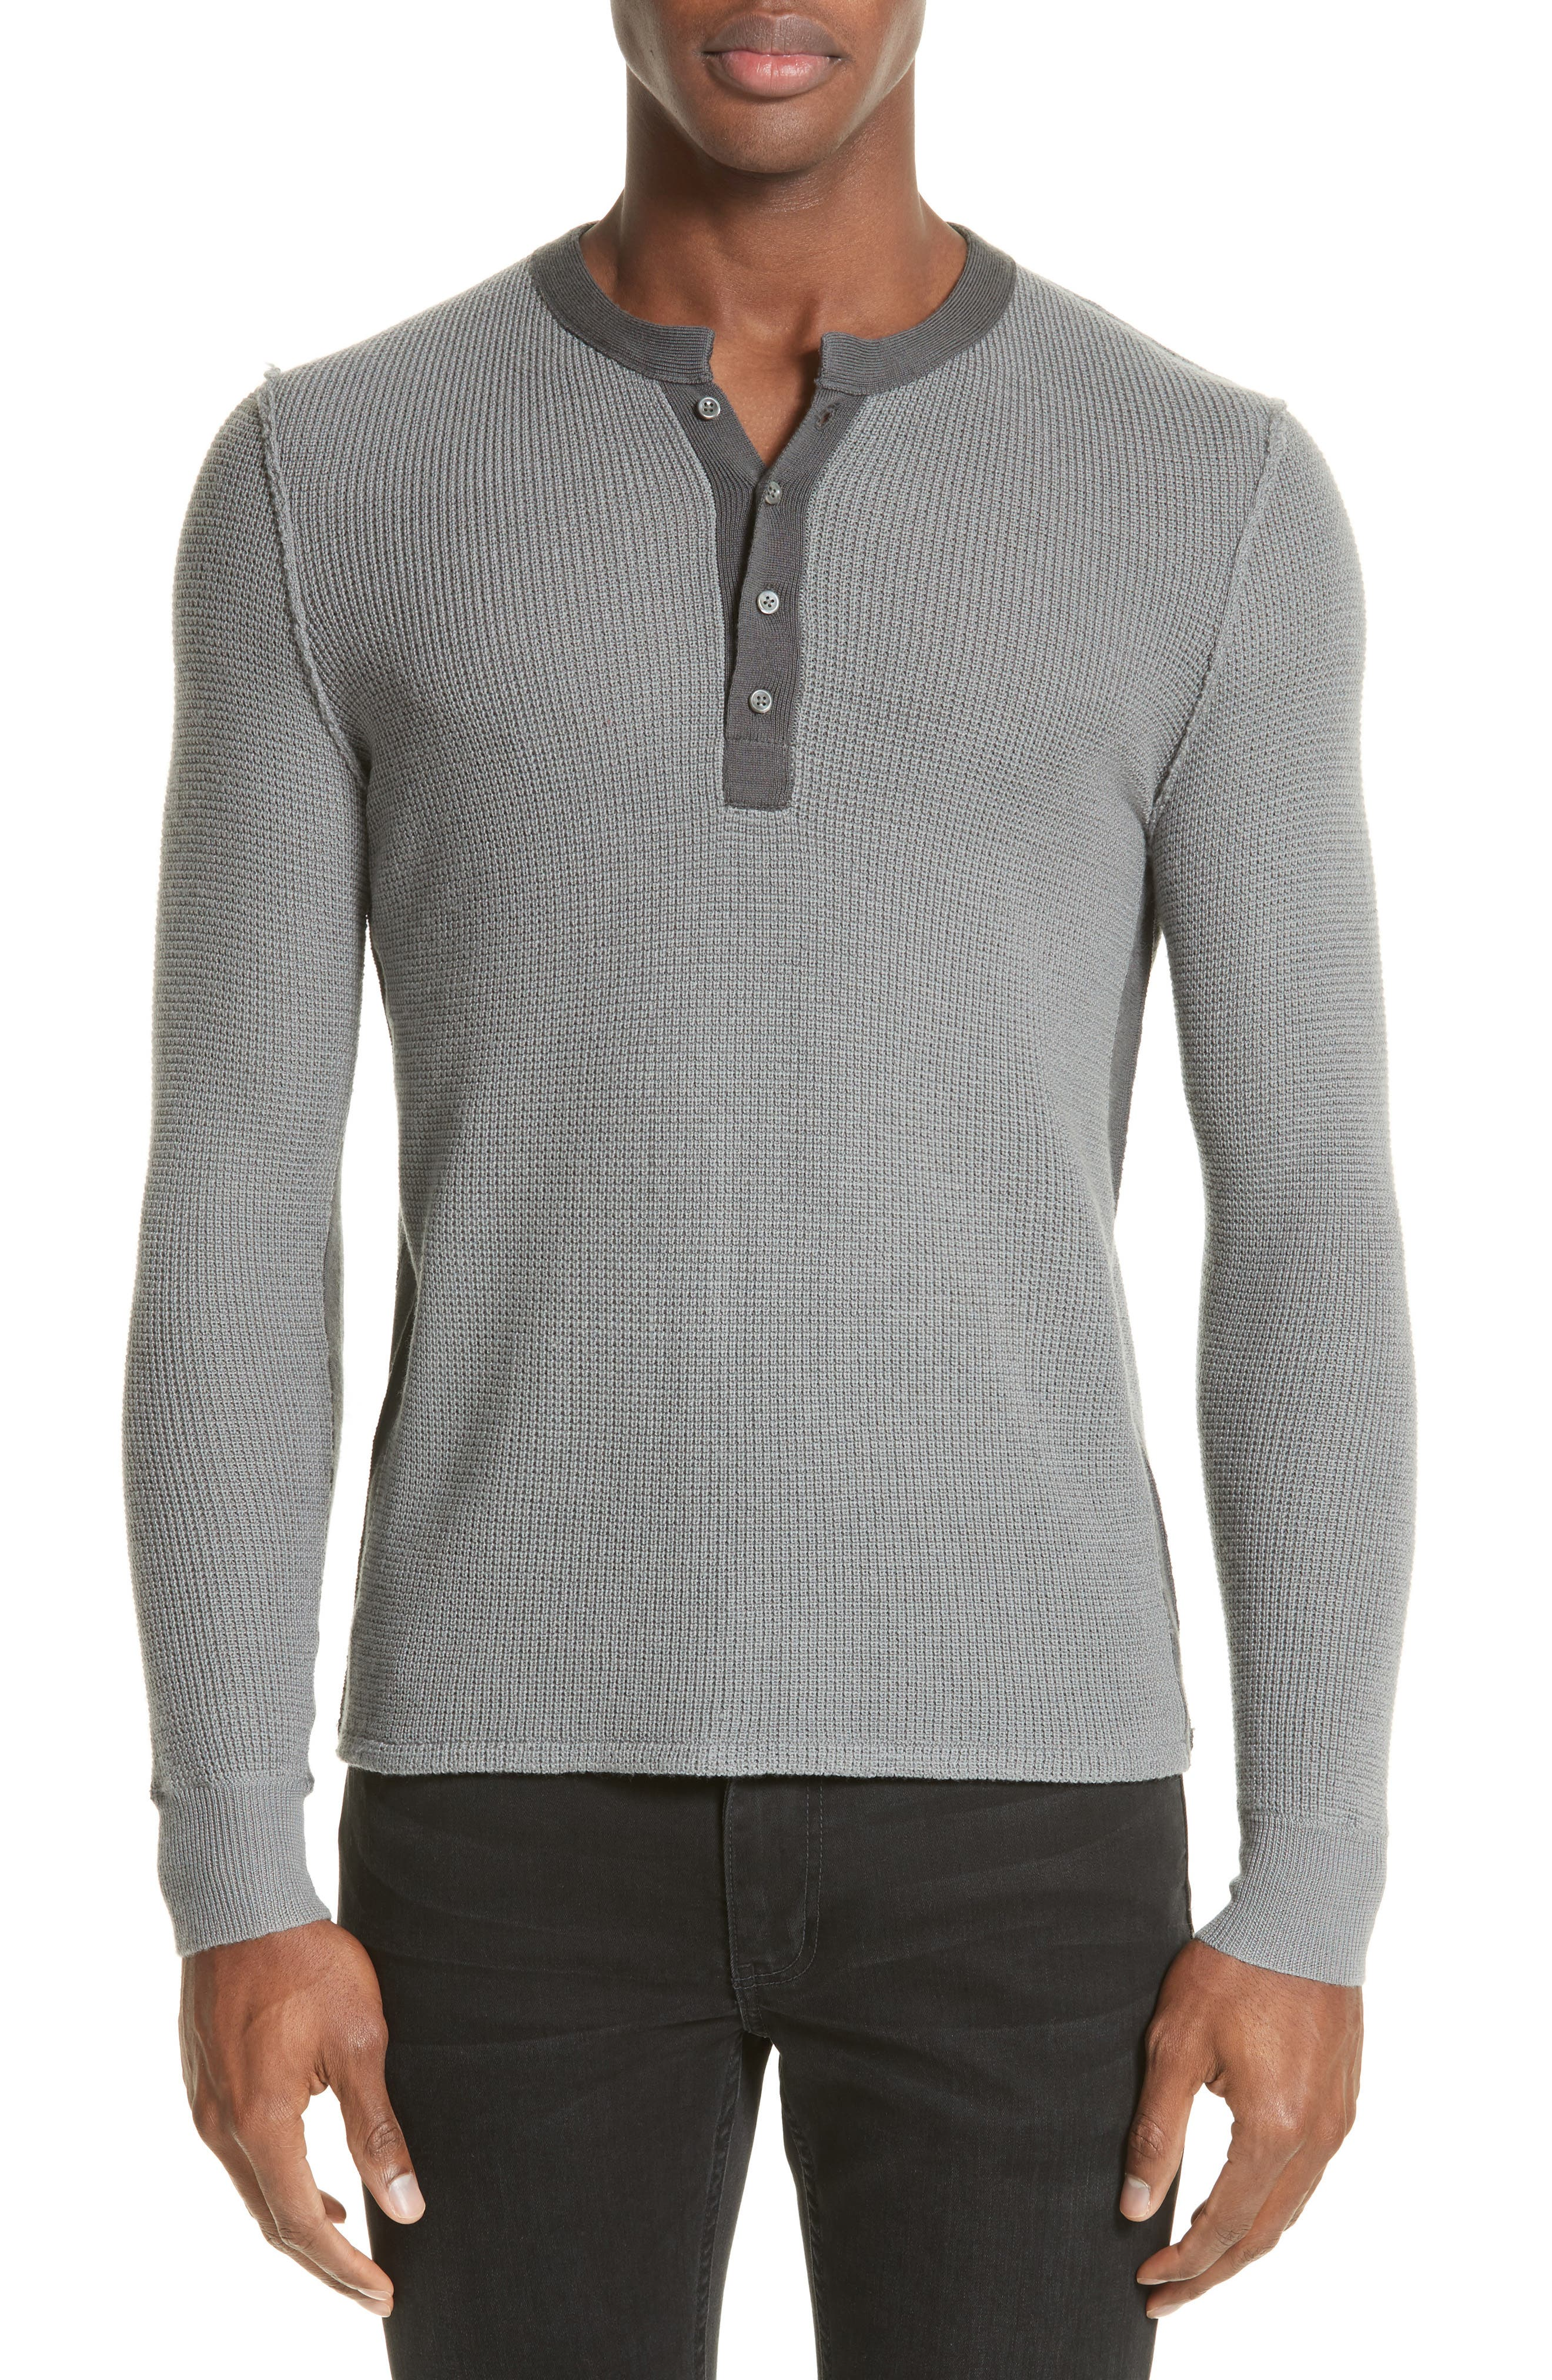 Alternate Image 1 Selected - OVADIA & SONS Zack Two-Tone Waffle Knit Wool Henley